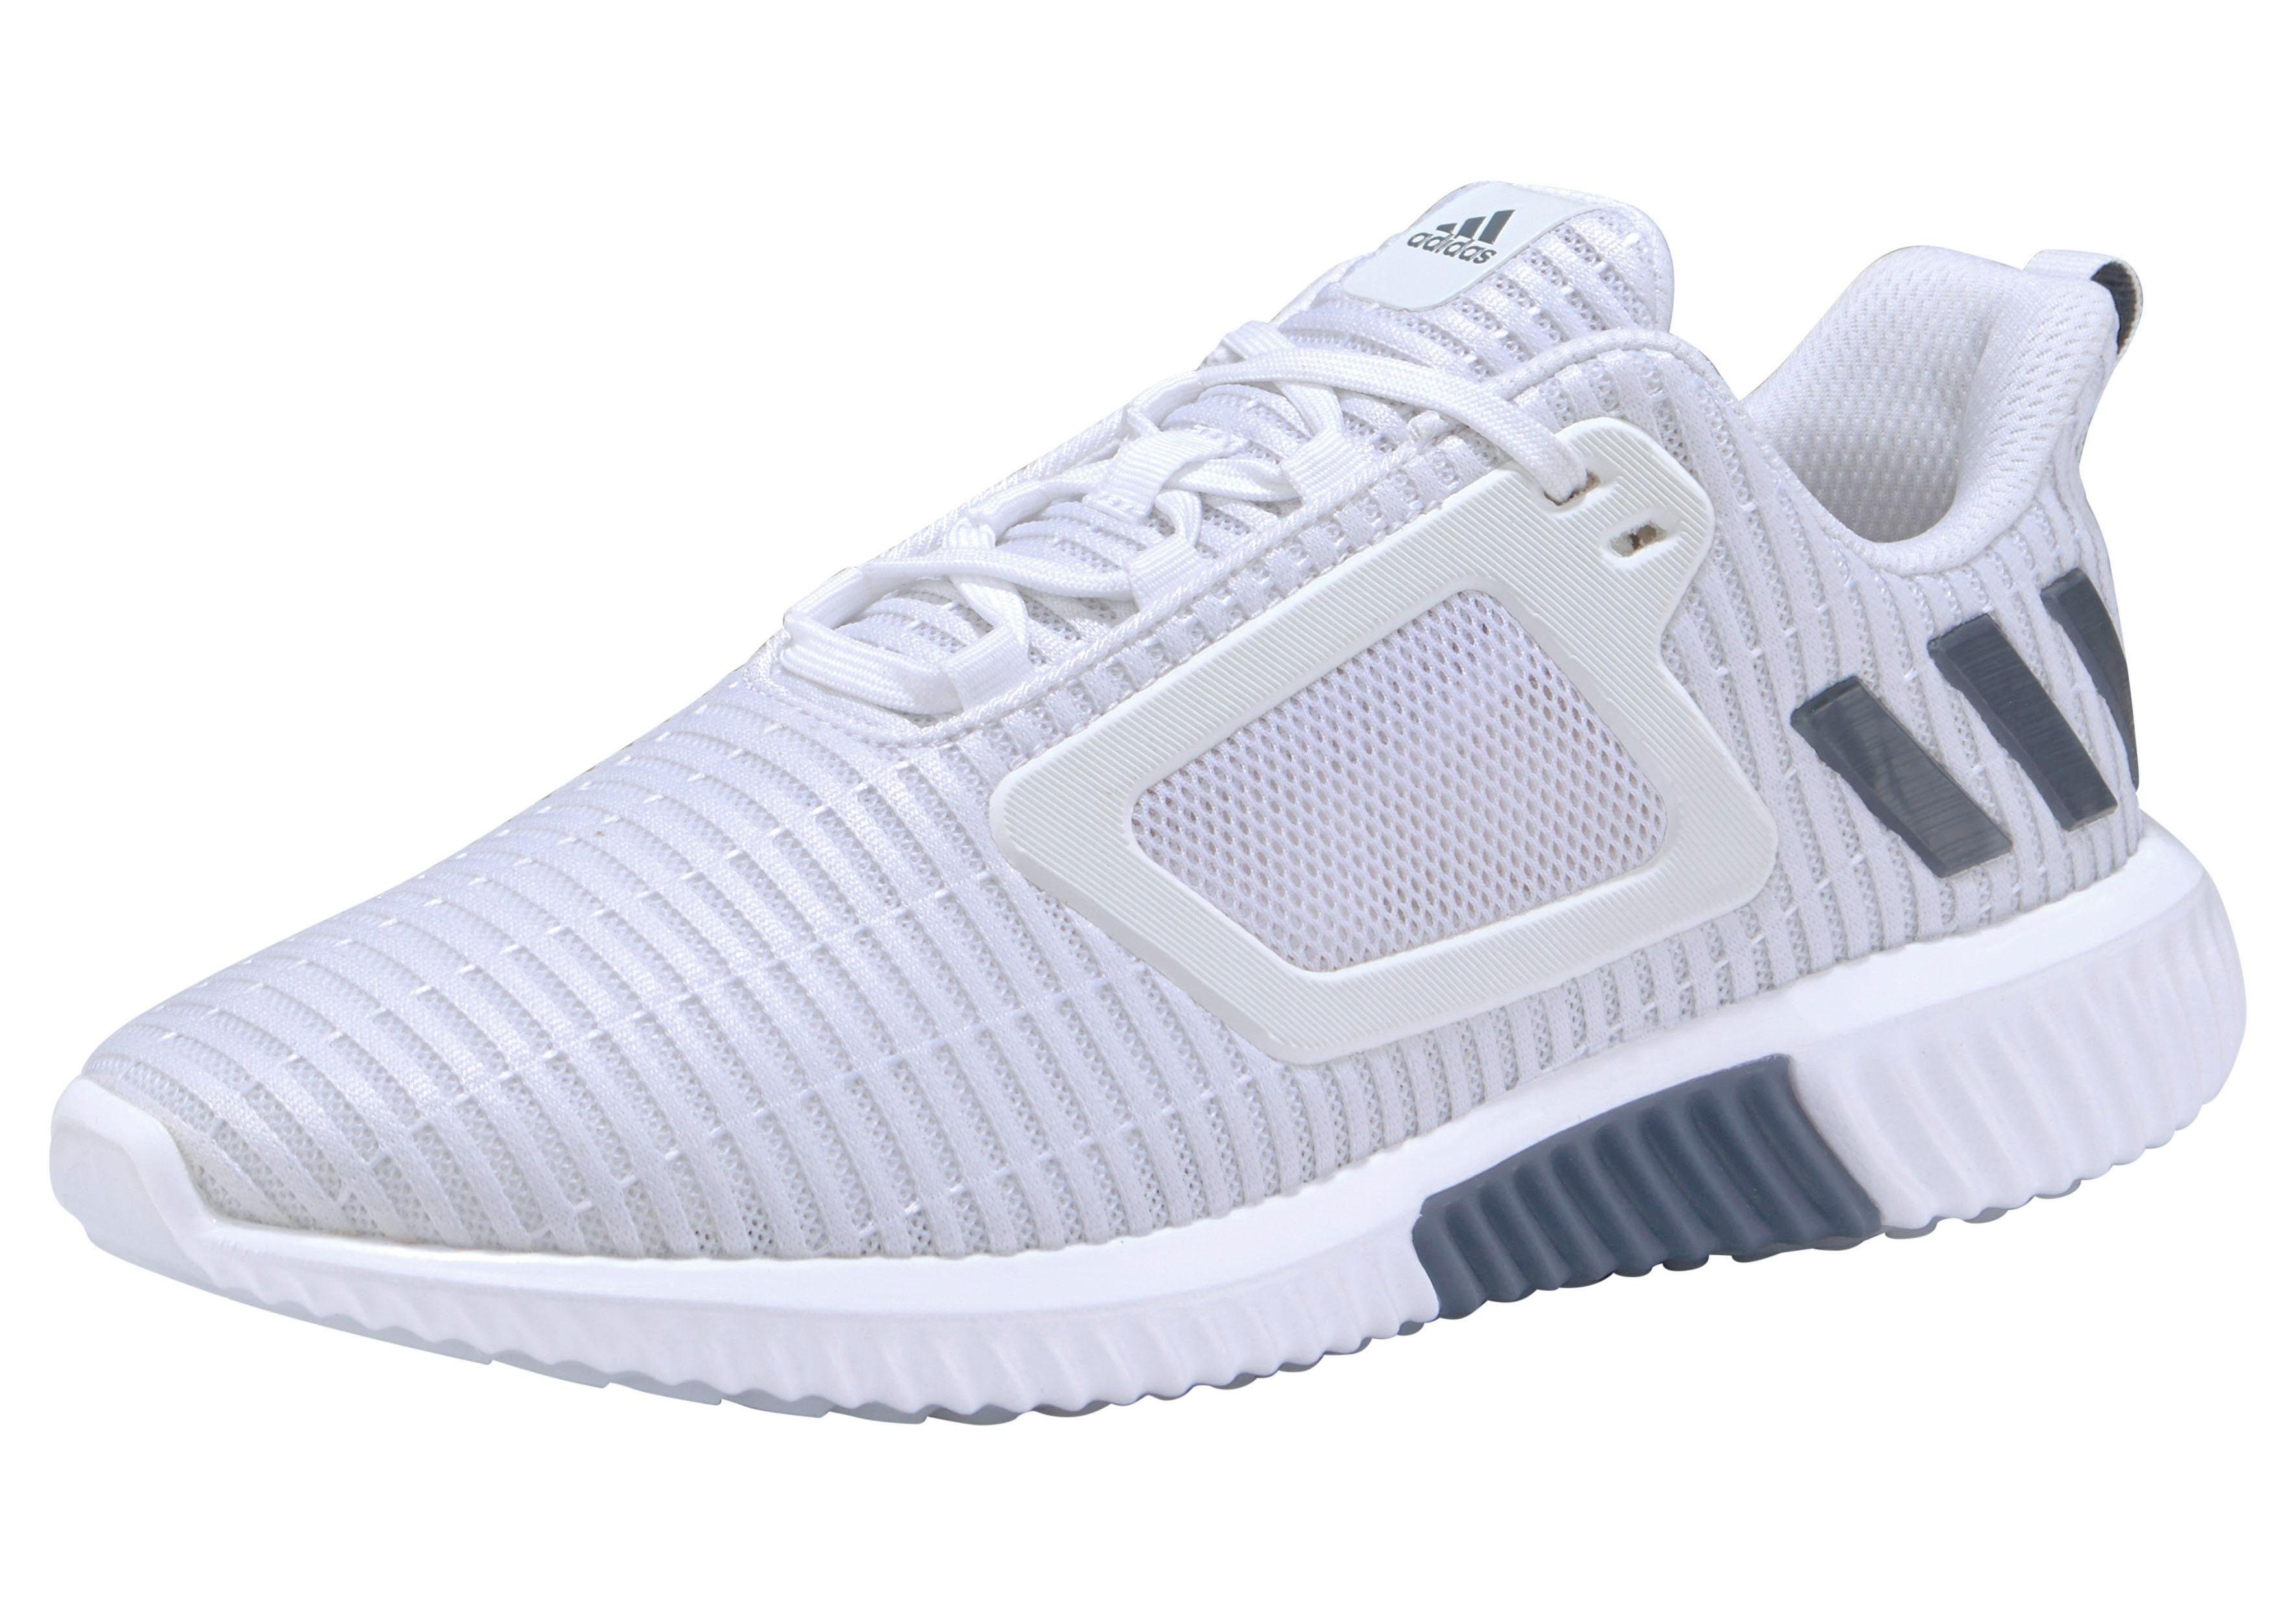 Adidas Laufschuh KaufenOtto Climacool Online Cm« »climacool Performance hBsrdxQotC